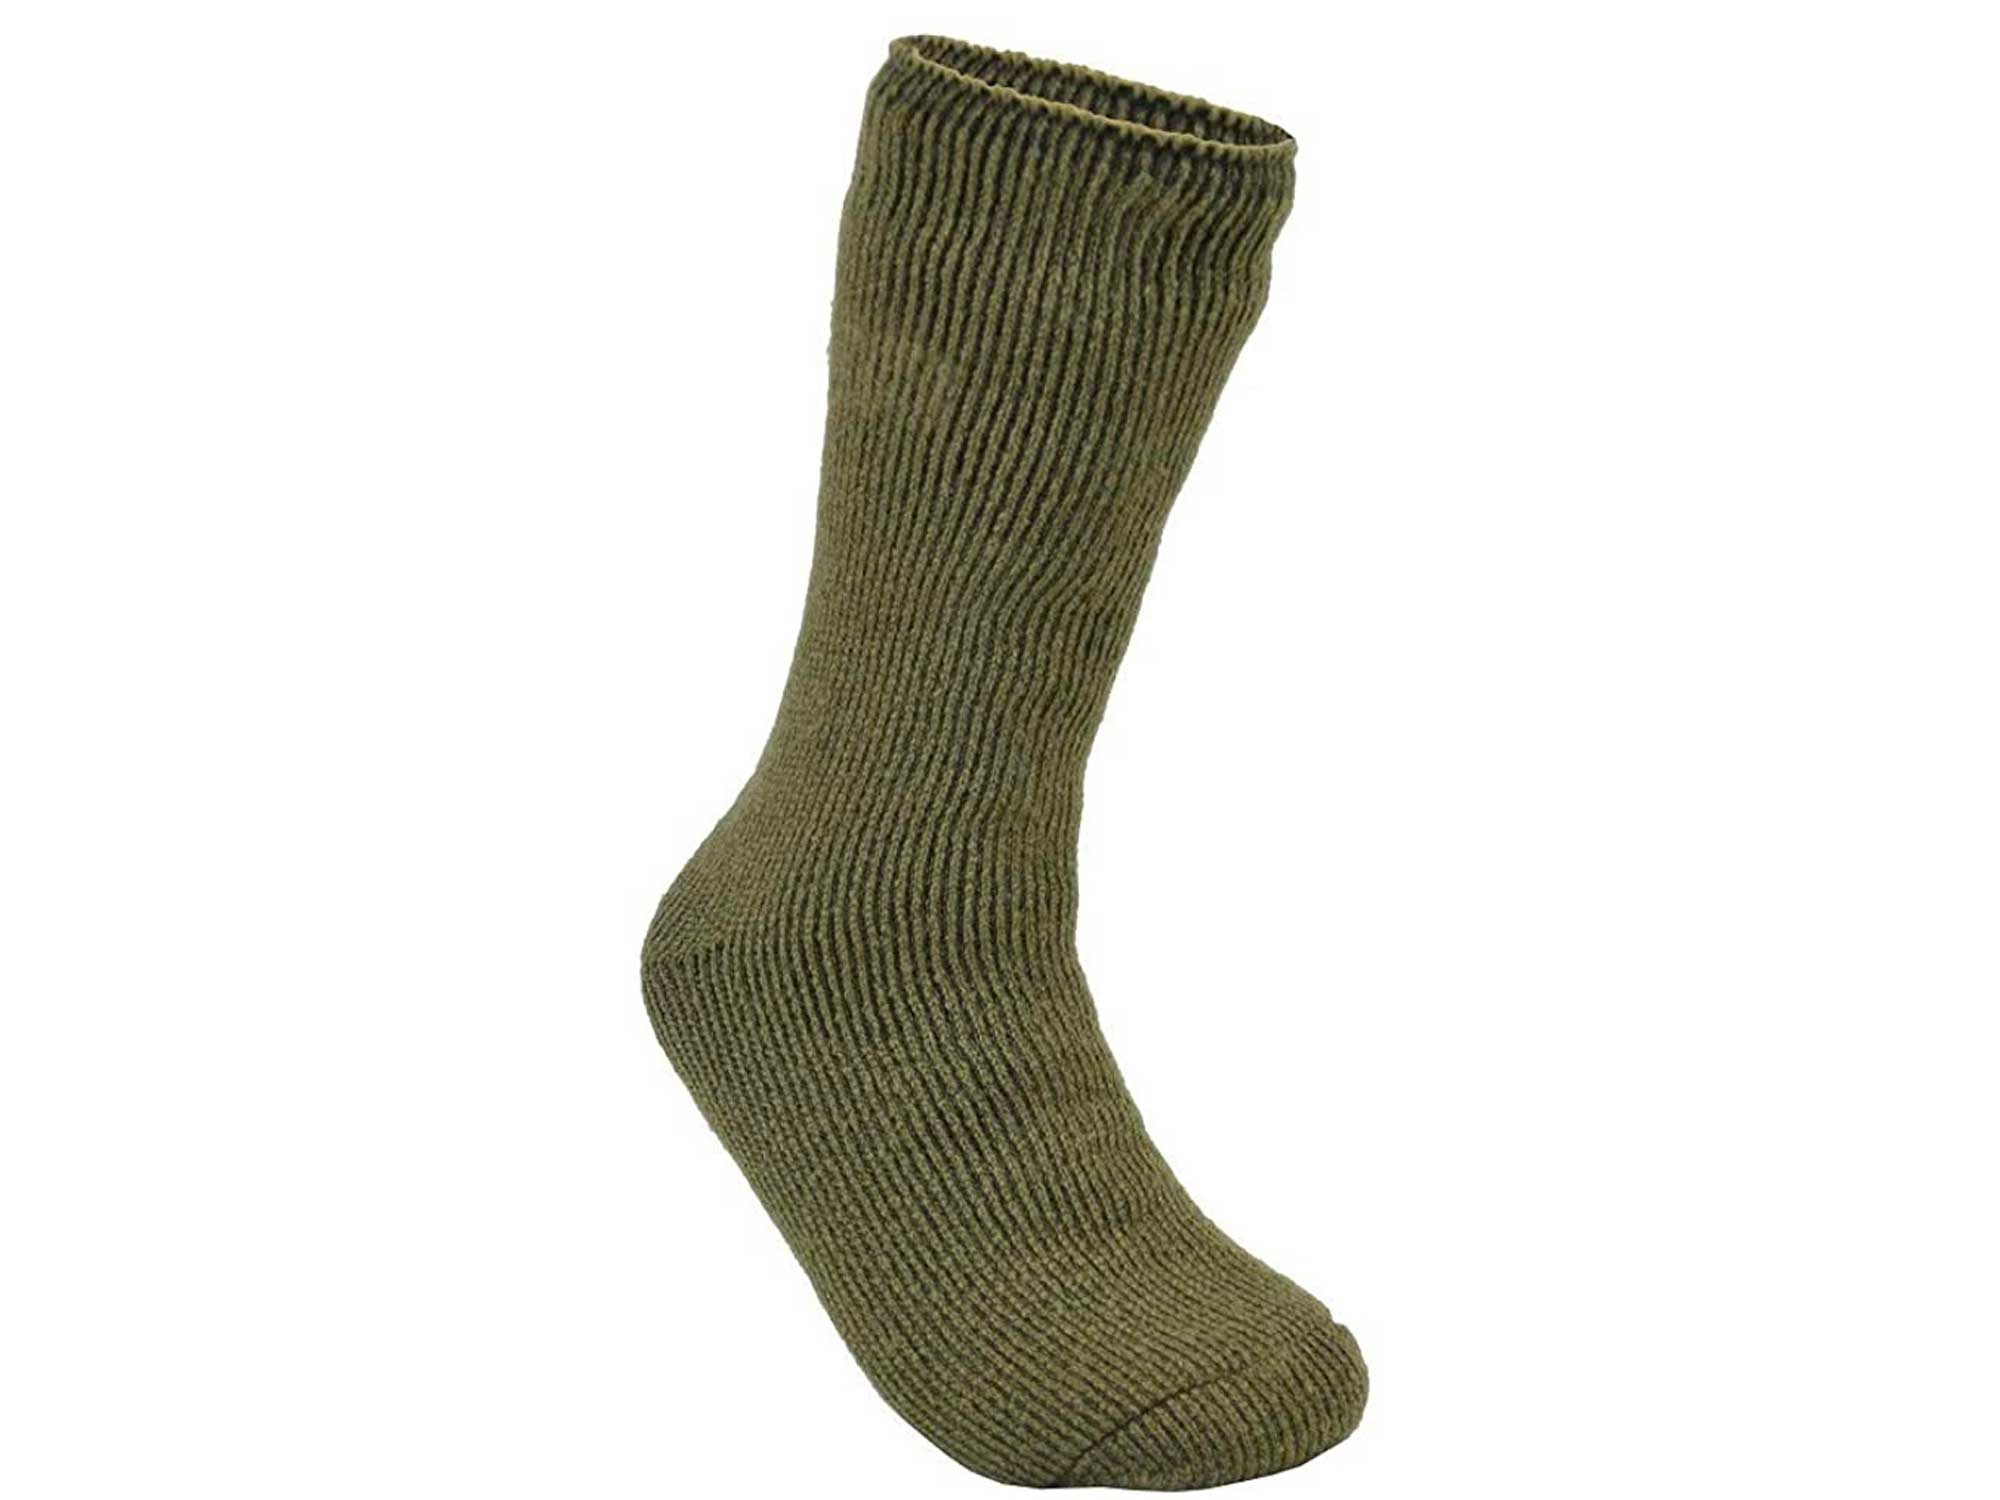 EcoSox Unisex Blue Flame Thermal Crew Boot Socks